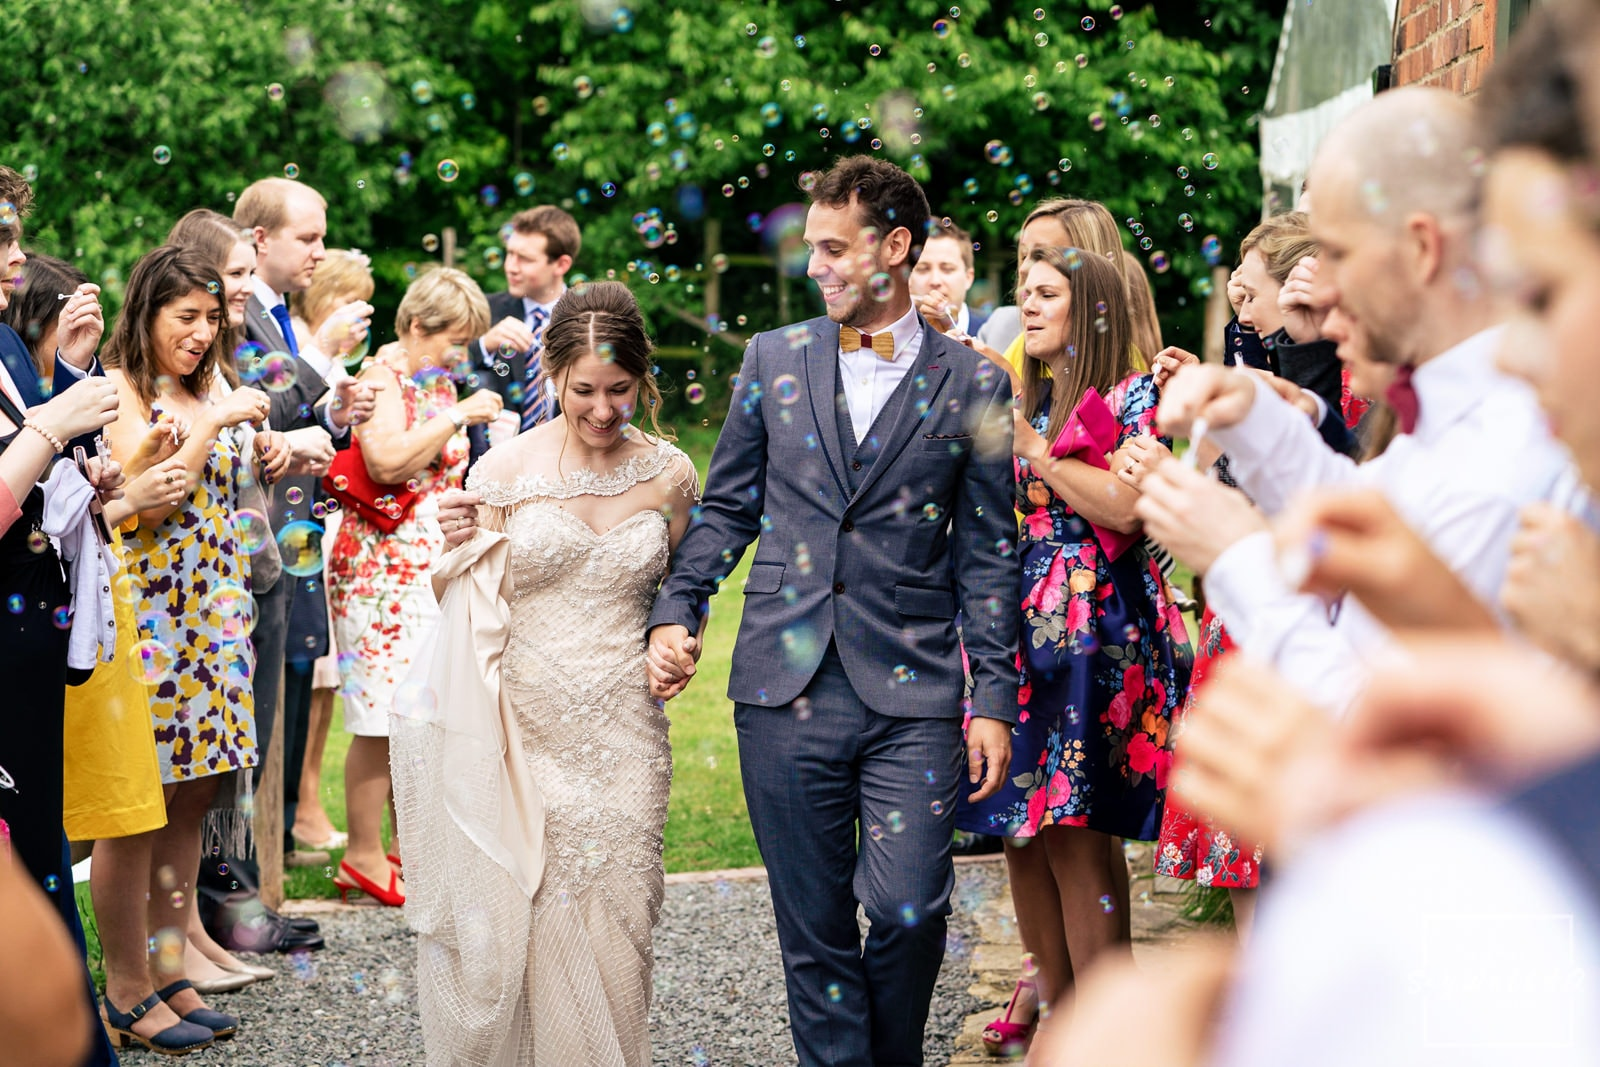 Leicester Wedding Photography + Leicester Wedding Photographer + Humanist Wedding Photographer + bride and groom walking through the confetti bubbles after their Humanist Wedding Ceremony